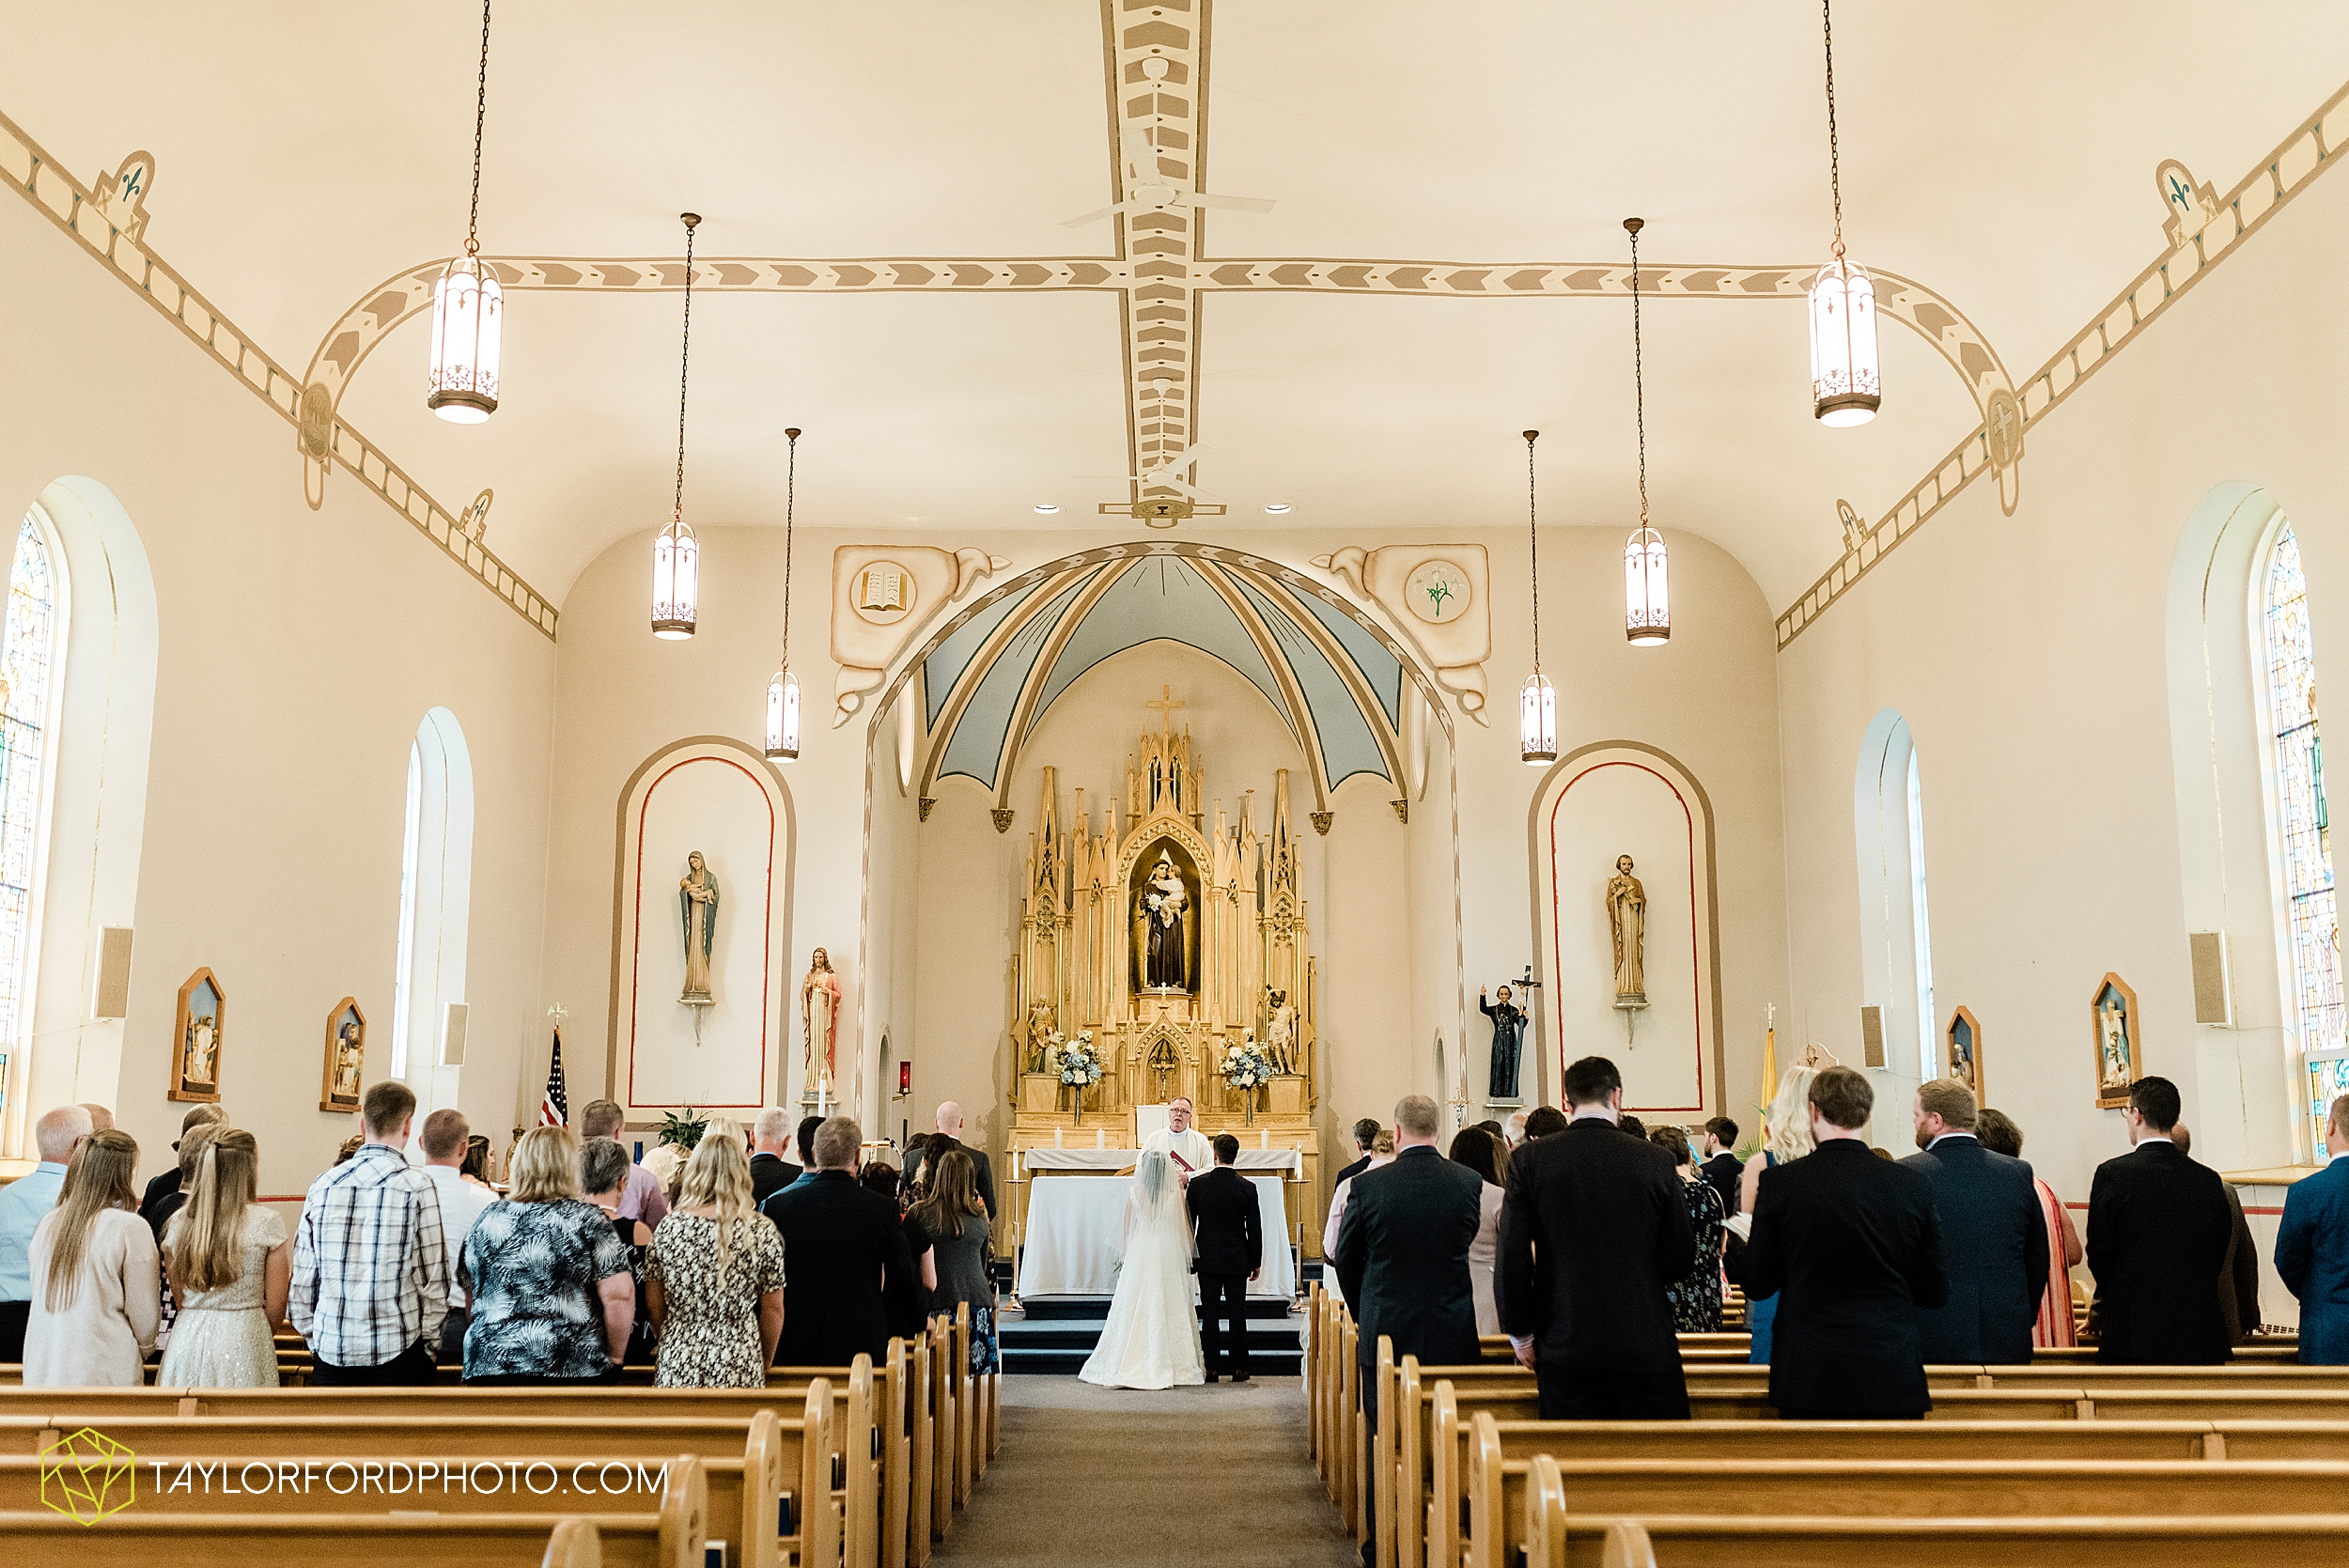 fort-recovery-ohio-saint-anthony-church-columbia-city-joseph-decuis-farmstead-tri-lakes-shriner-lake-wawasee-wedding-photographer-photography-taylor-ford-hirschy-photographer_2869.jpg